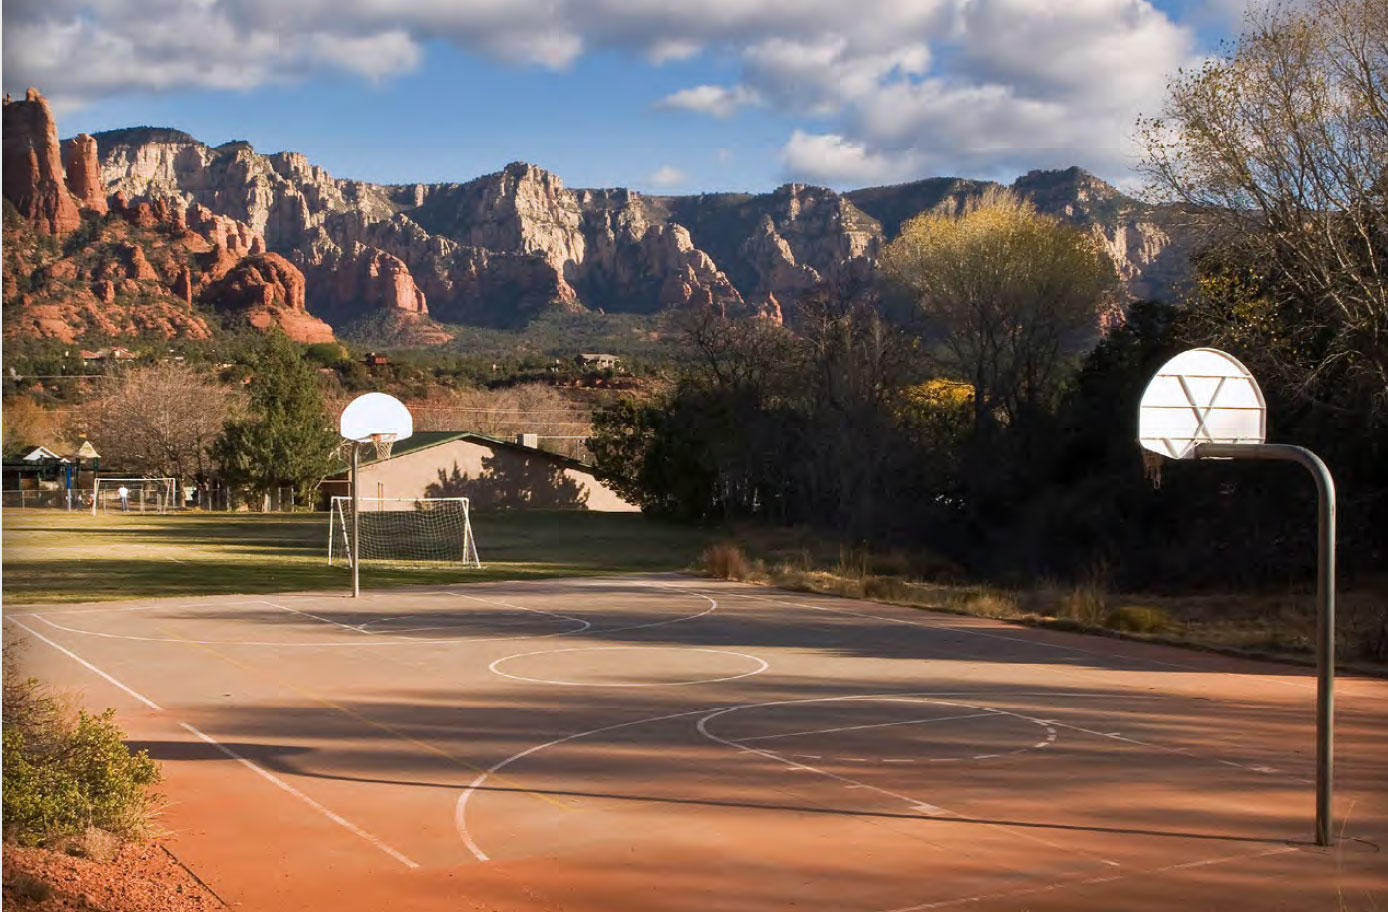 Public school playground, Sedona, Arizona; 2009. All images © Bill Bamberger.